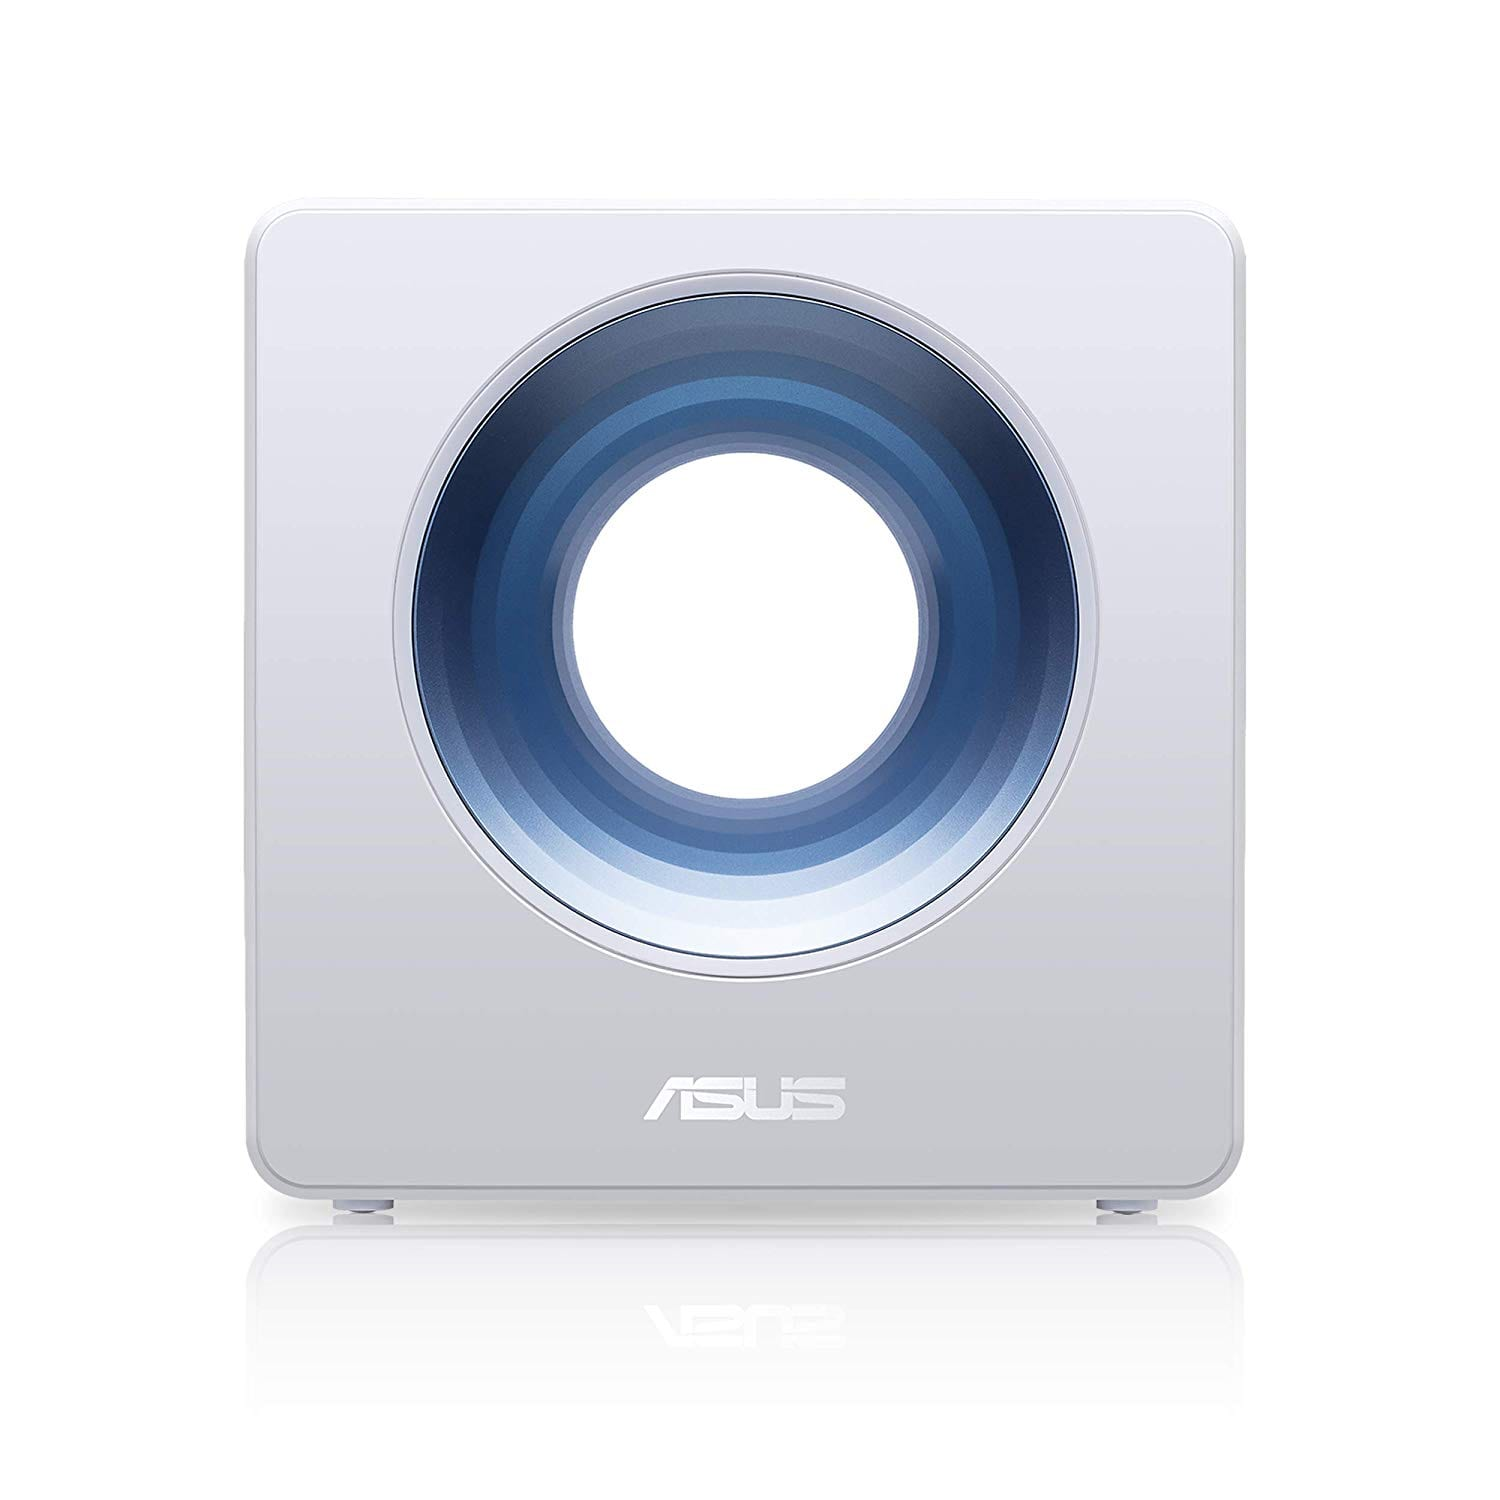 Asus Blue Cave AC2600 Dual-Band Wireless Router $89.99 + free ship